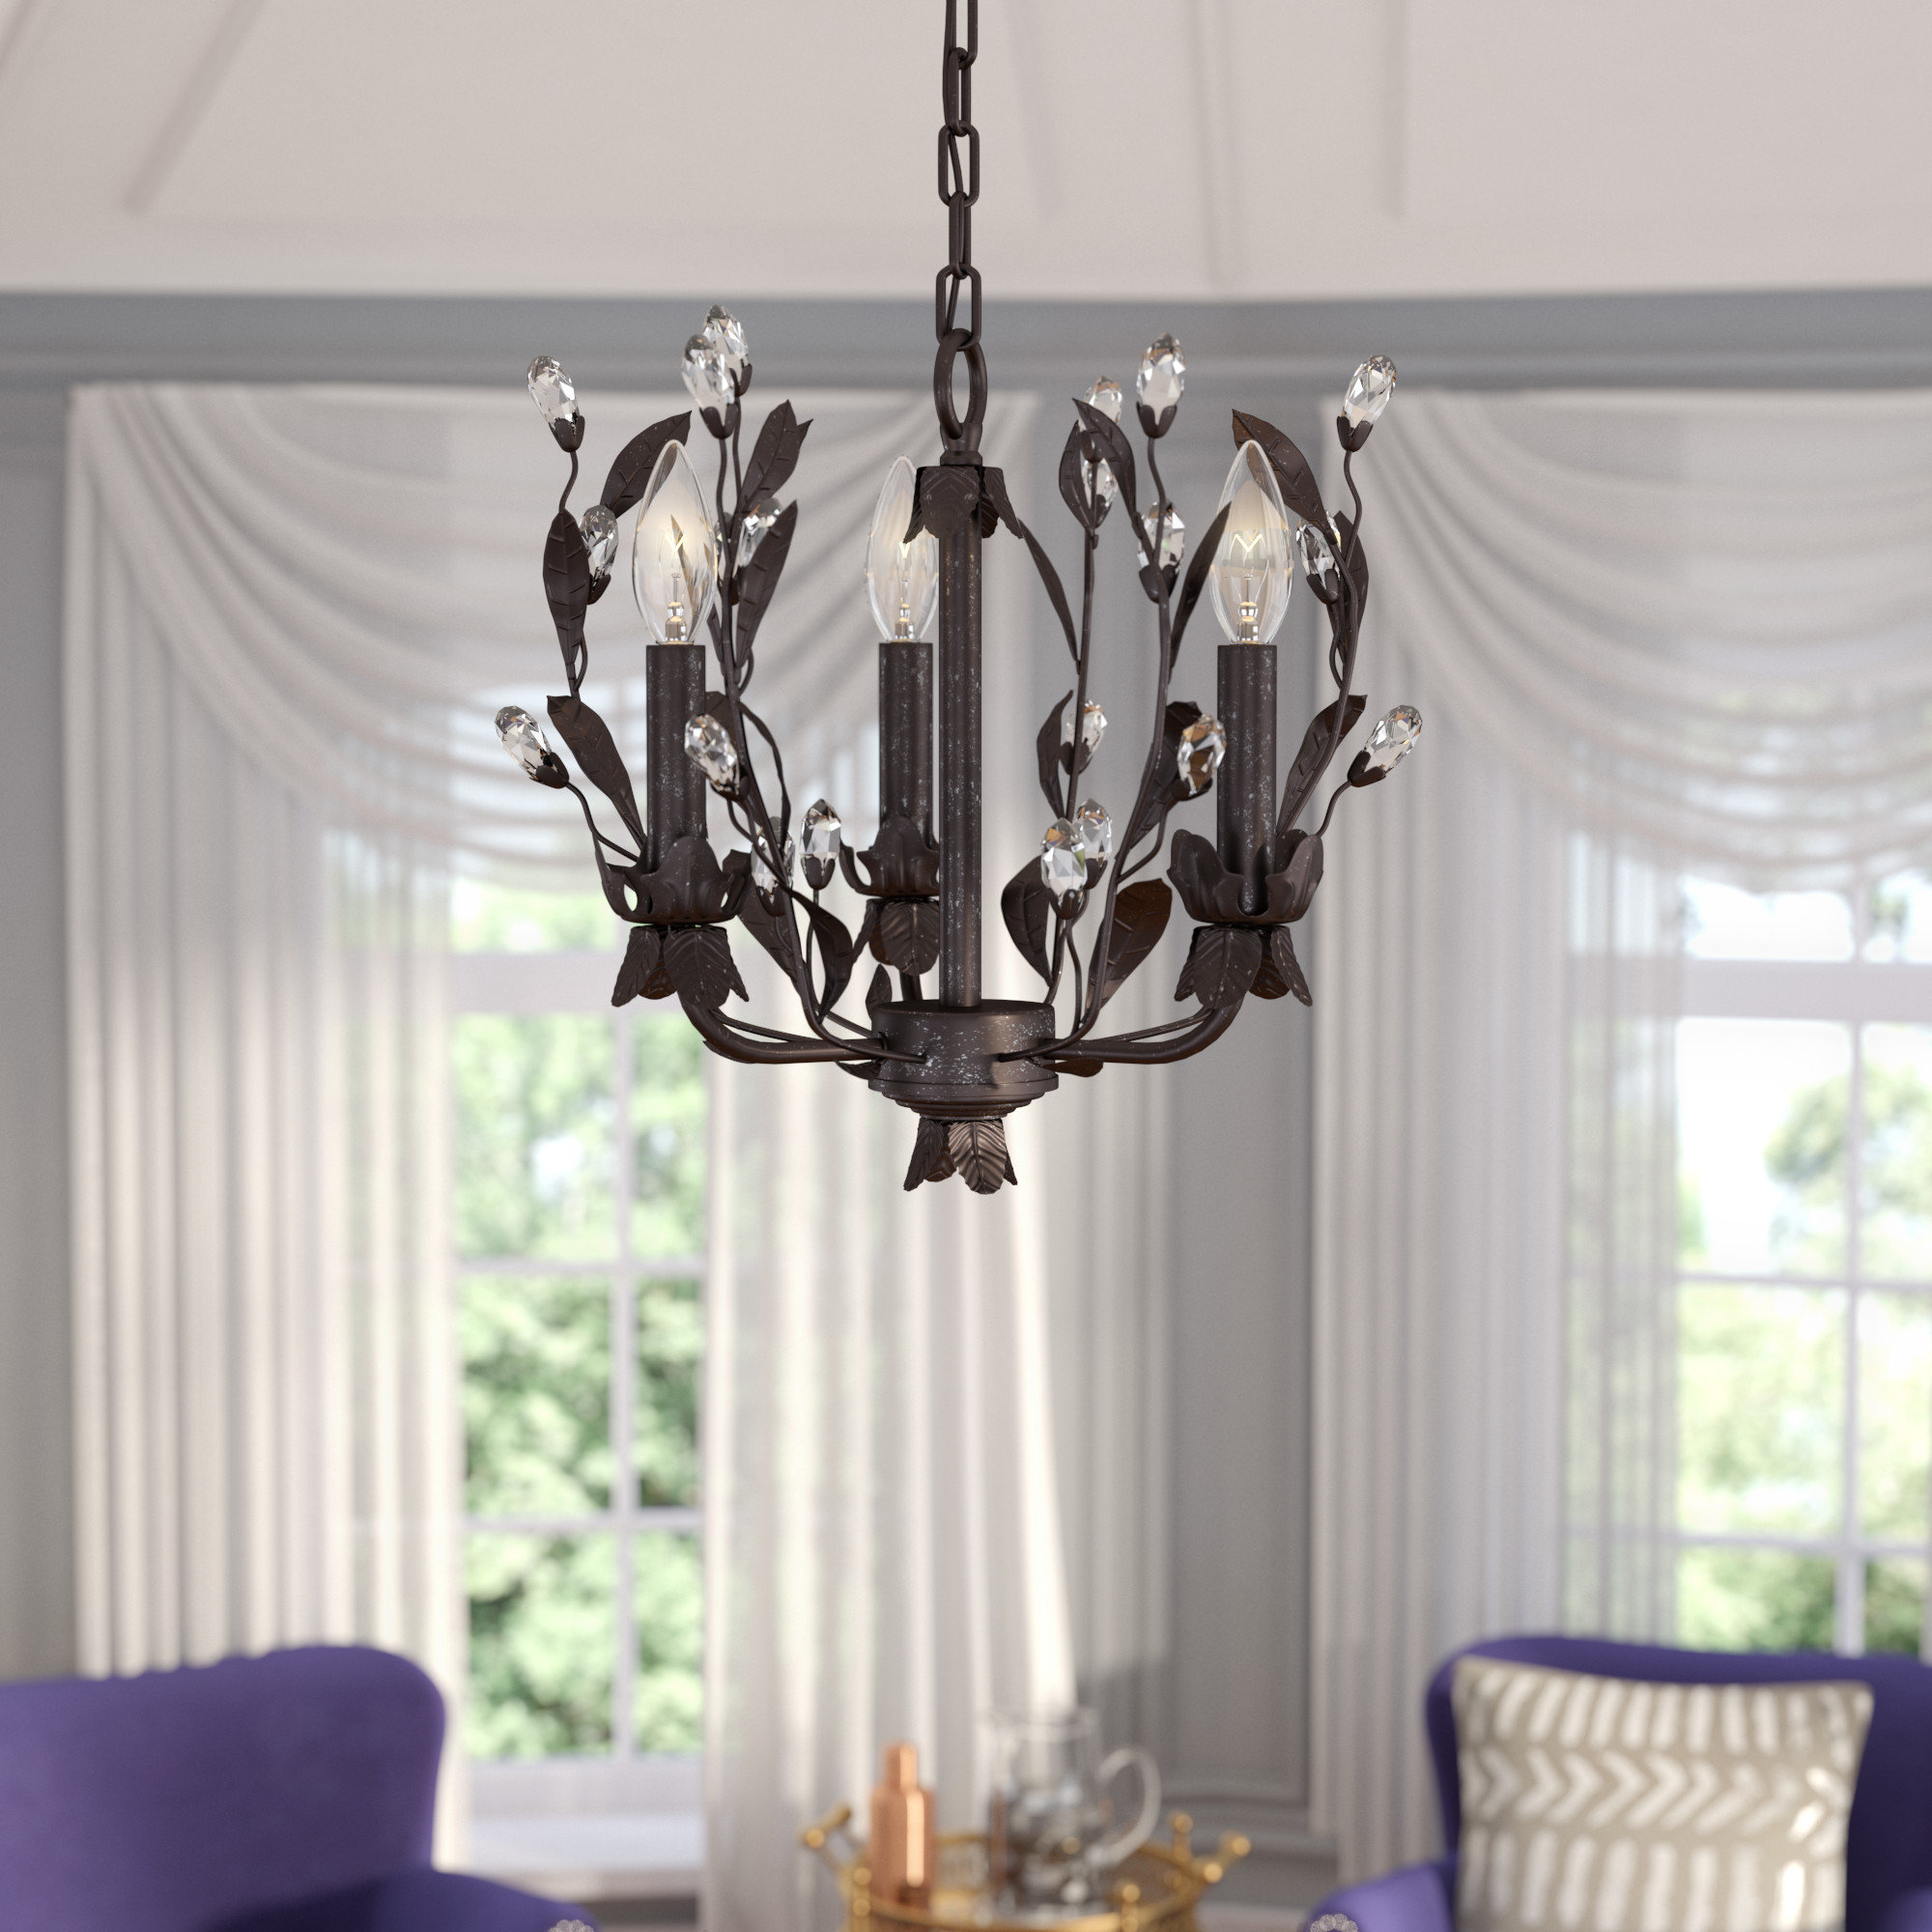 Giovanna 3 Light Candle Style Chandelier Regarding Hesse 5 Light Candle Style Chandeliers (View 10 of 30)